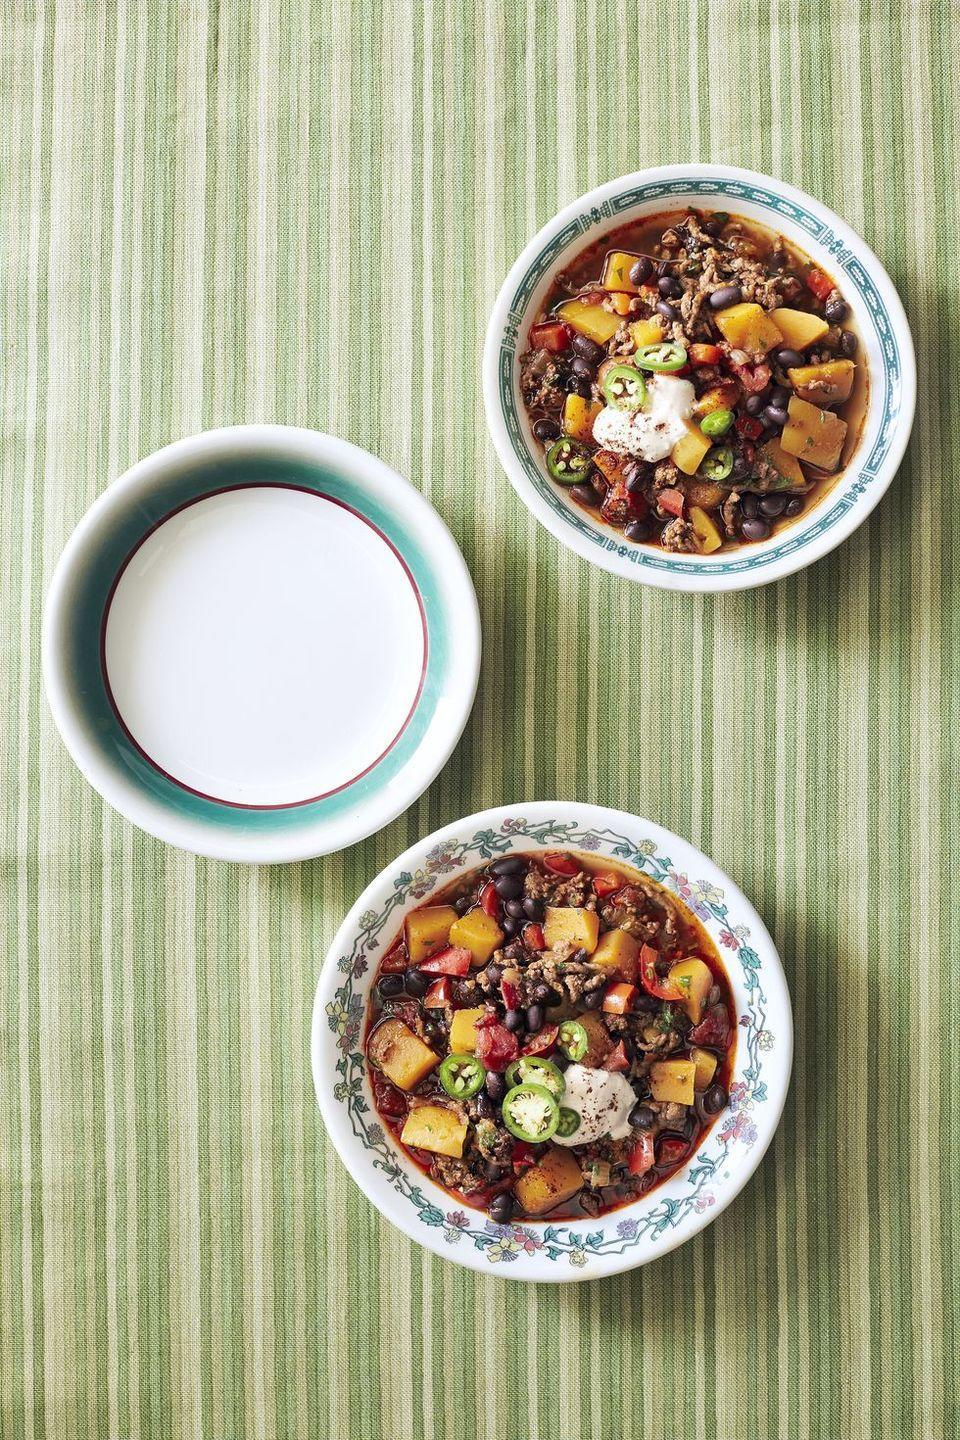 "<p>Pumpkin and chili go great together (see above.) For another dish featuring this sweet and savory dynamic duo, try this recipe that also features soft and tender beef.</p><p><em><a href=""http://www.countryliving.com/food-drinks/recipes/a6184/pumpkin-beef-black-bean-chili-recipe-clx1014/"" rel=""nofollow noopener"" target=""_blank"" data-ylk=""slk:Get the recipe from Country Living »"" class=""link rapid-noclick-resp"">Get the recipe from Country Living »</a></em></p>"